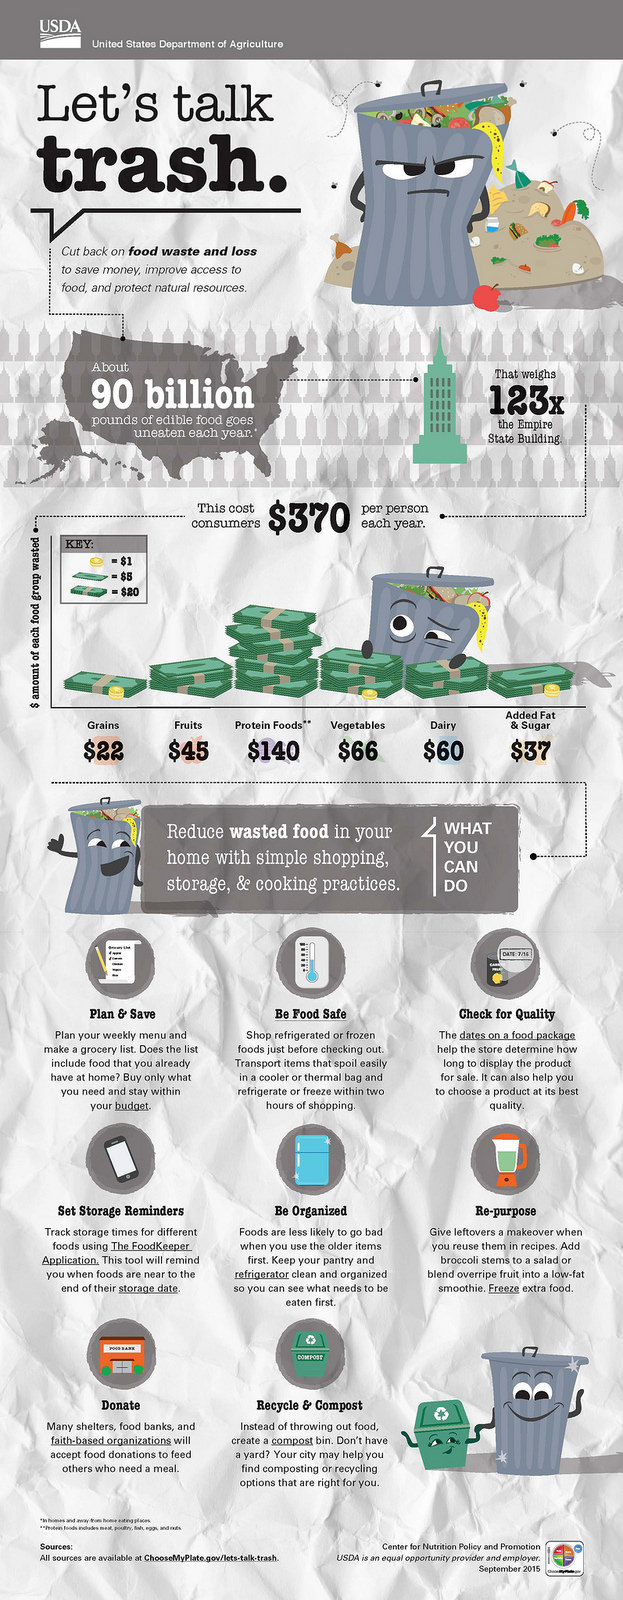 A rectangular infographic depicts a trash can and food piled up, and gives statistics about food waste in the United States. Farther down on the infographic are amounts of money lost per person per year through food waste, and tips for wasting less food.